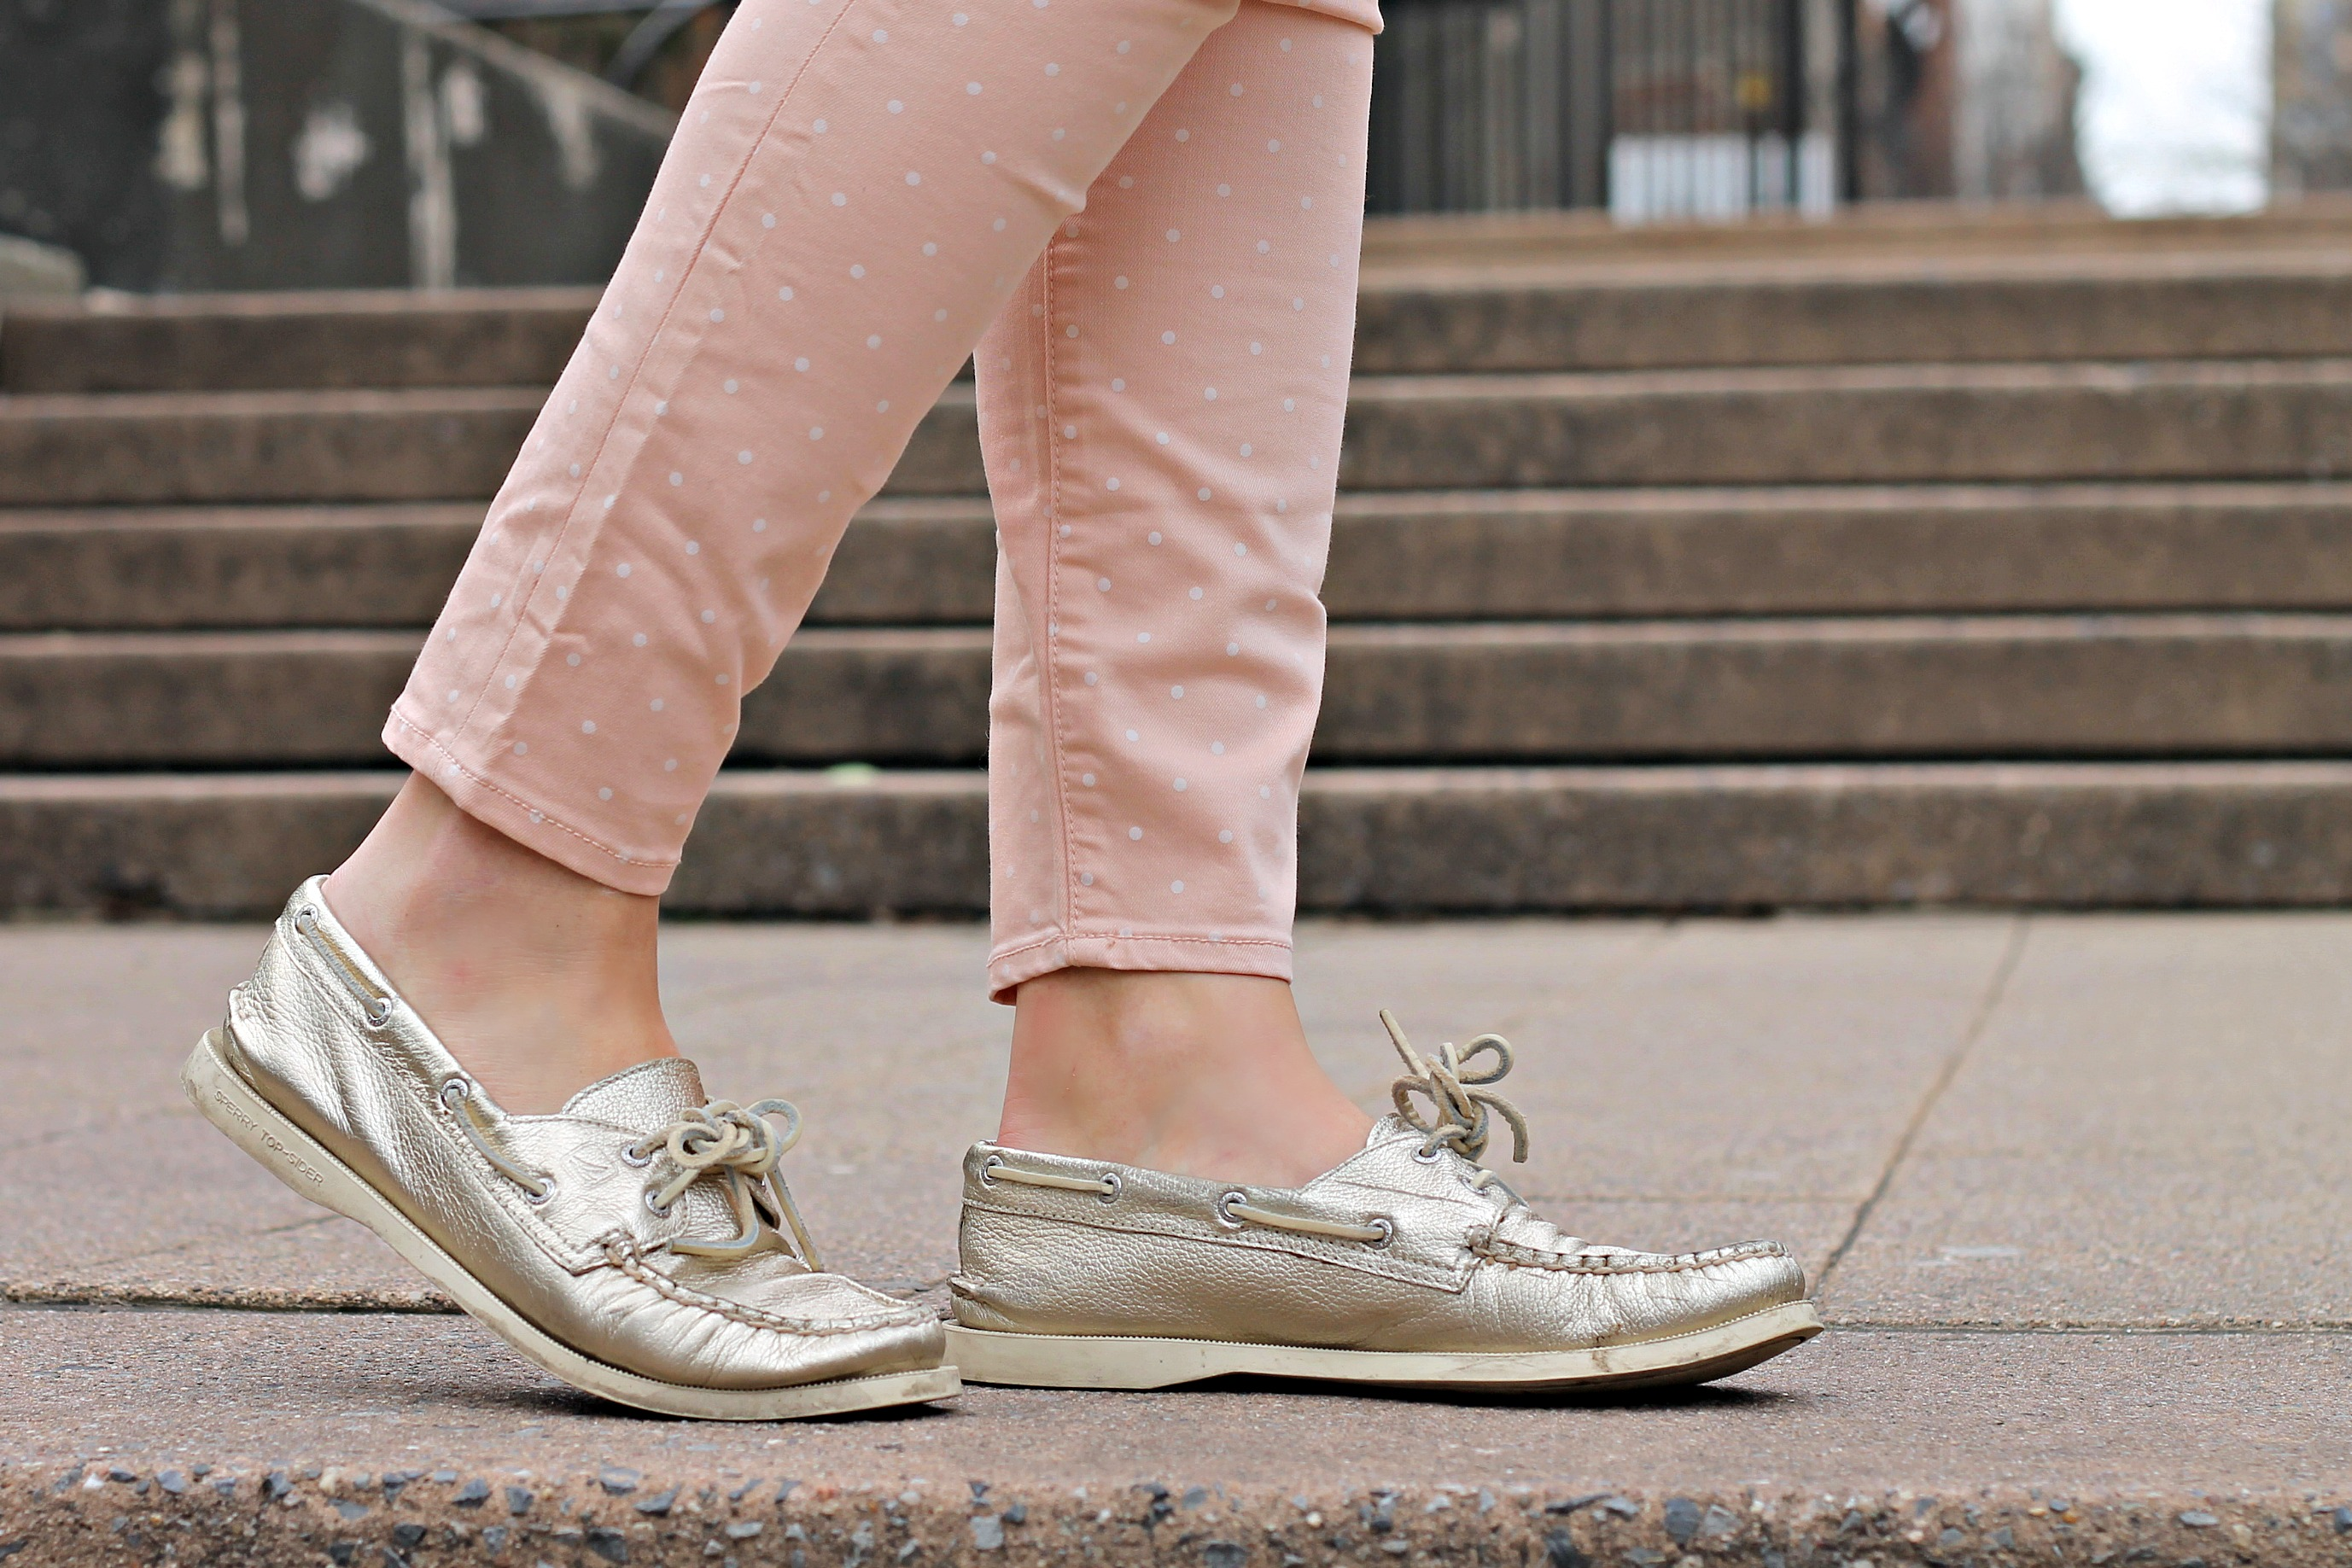 97a252d28fe0 Sperry Top-Side Platinum Metallic Leather Boat Shoe — bows   sequins